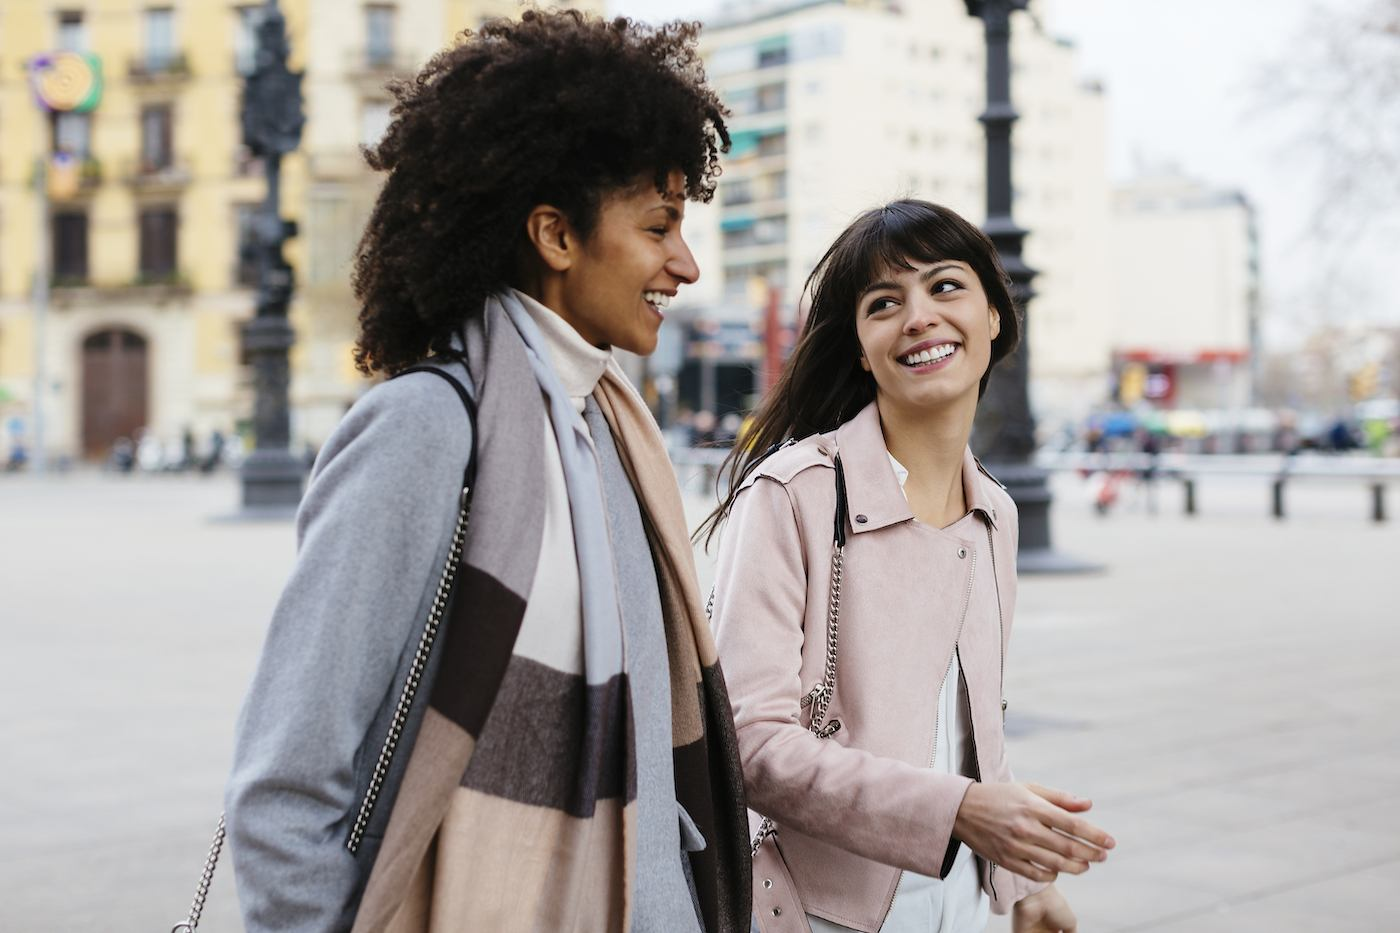 What to do if your friends swipe left on your new romantic interest